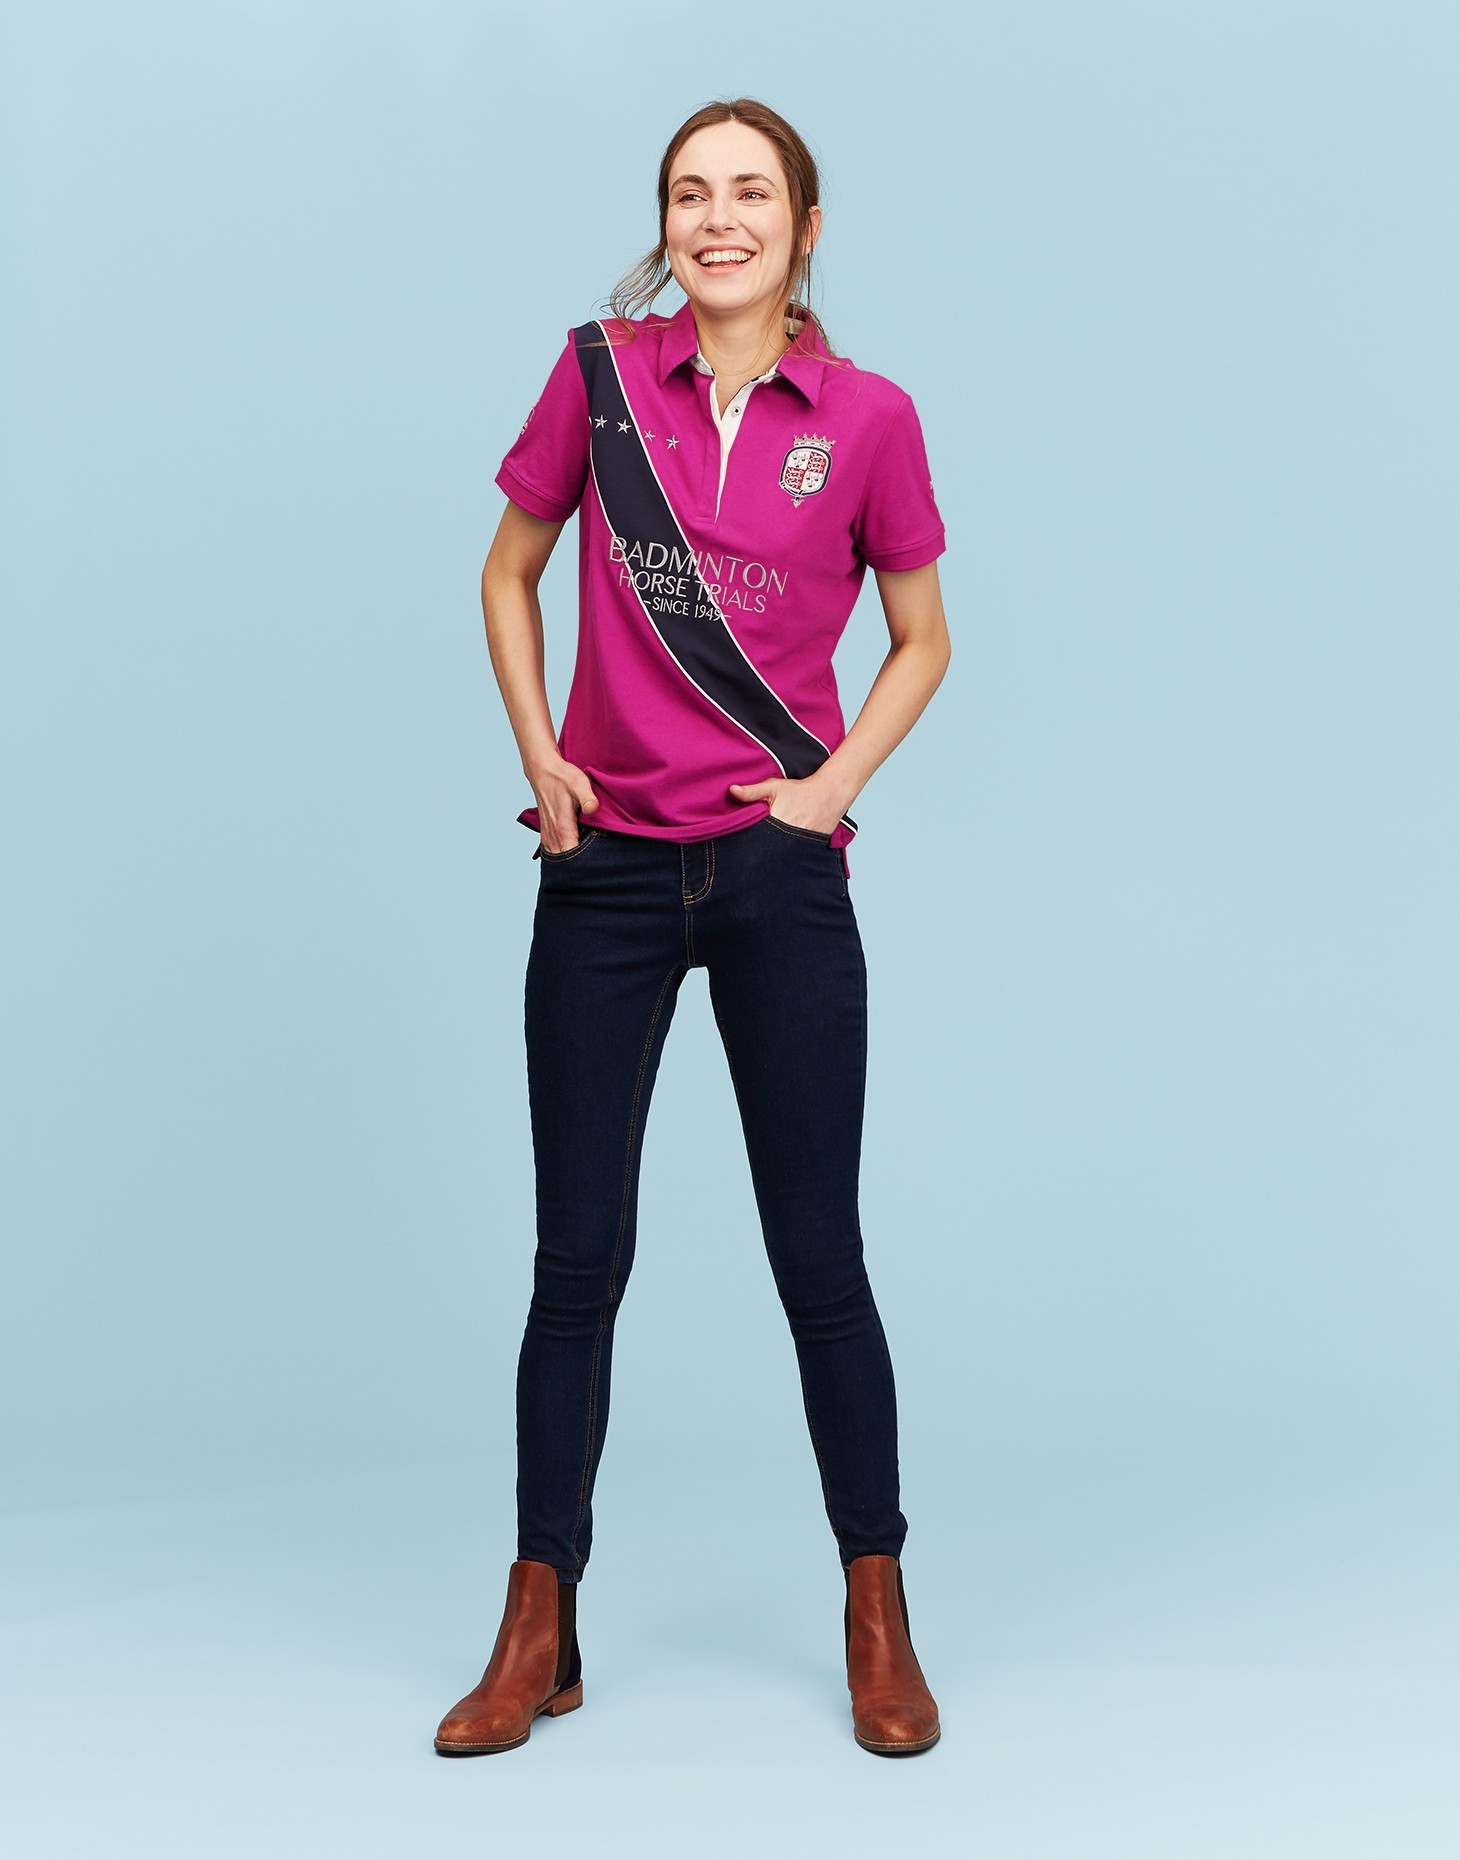 Joules Official Badminton Ladies Polo  - Thomas Irving's equestrian and accessories store  Joules Official Badminton Ladies Polo